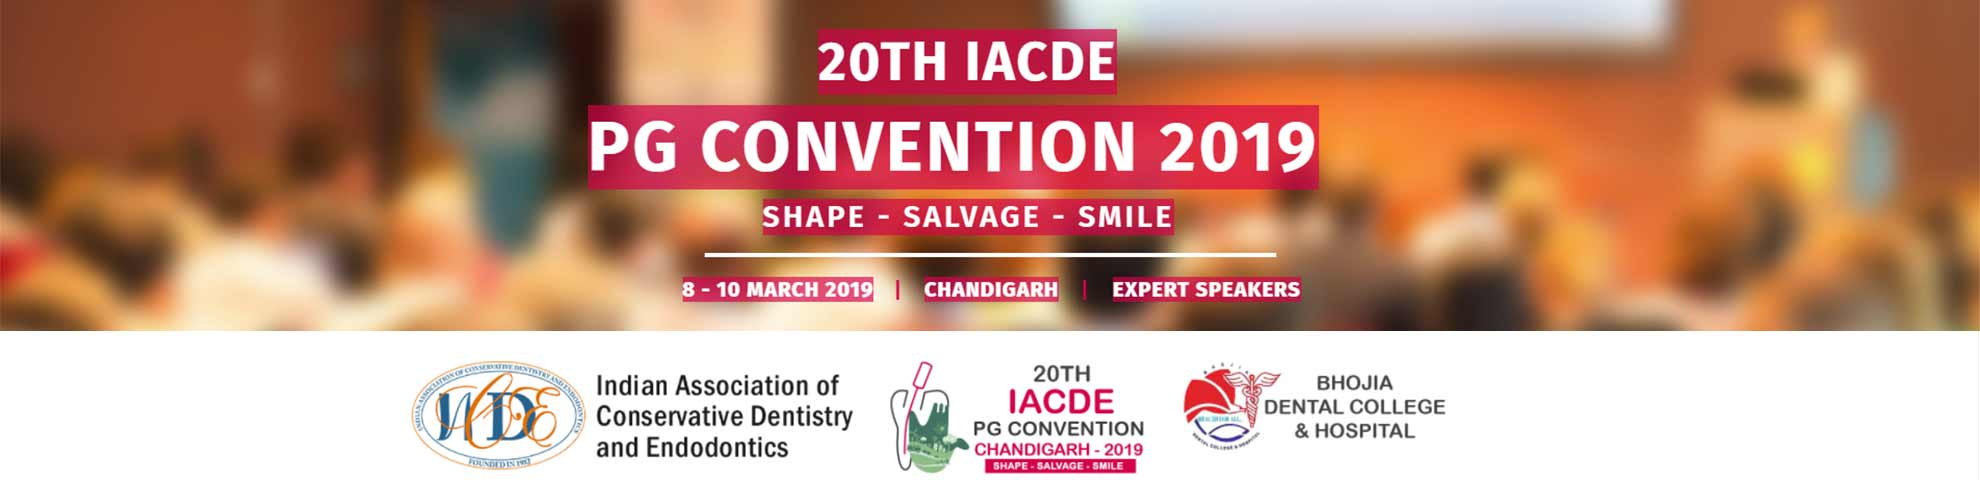 20th IACDE PG Convention 2019